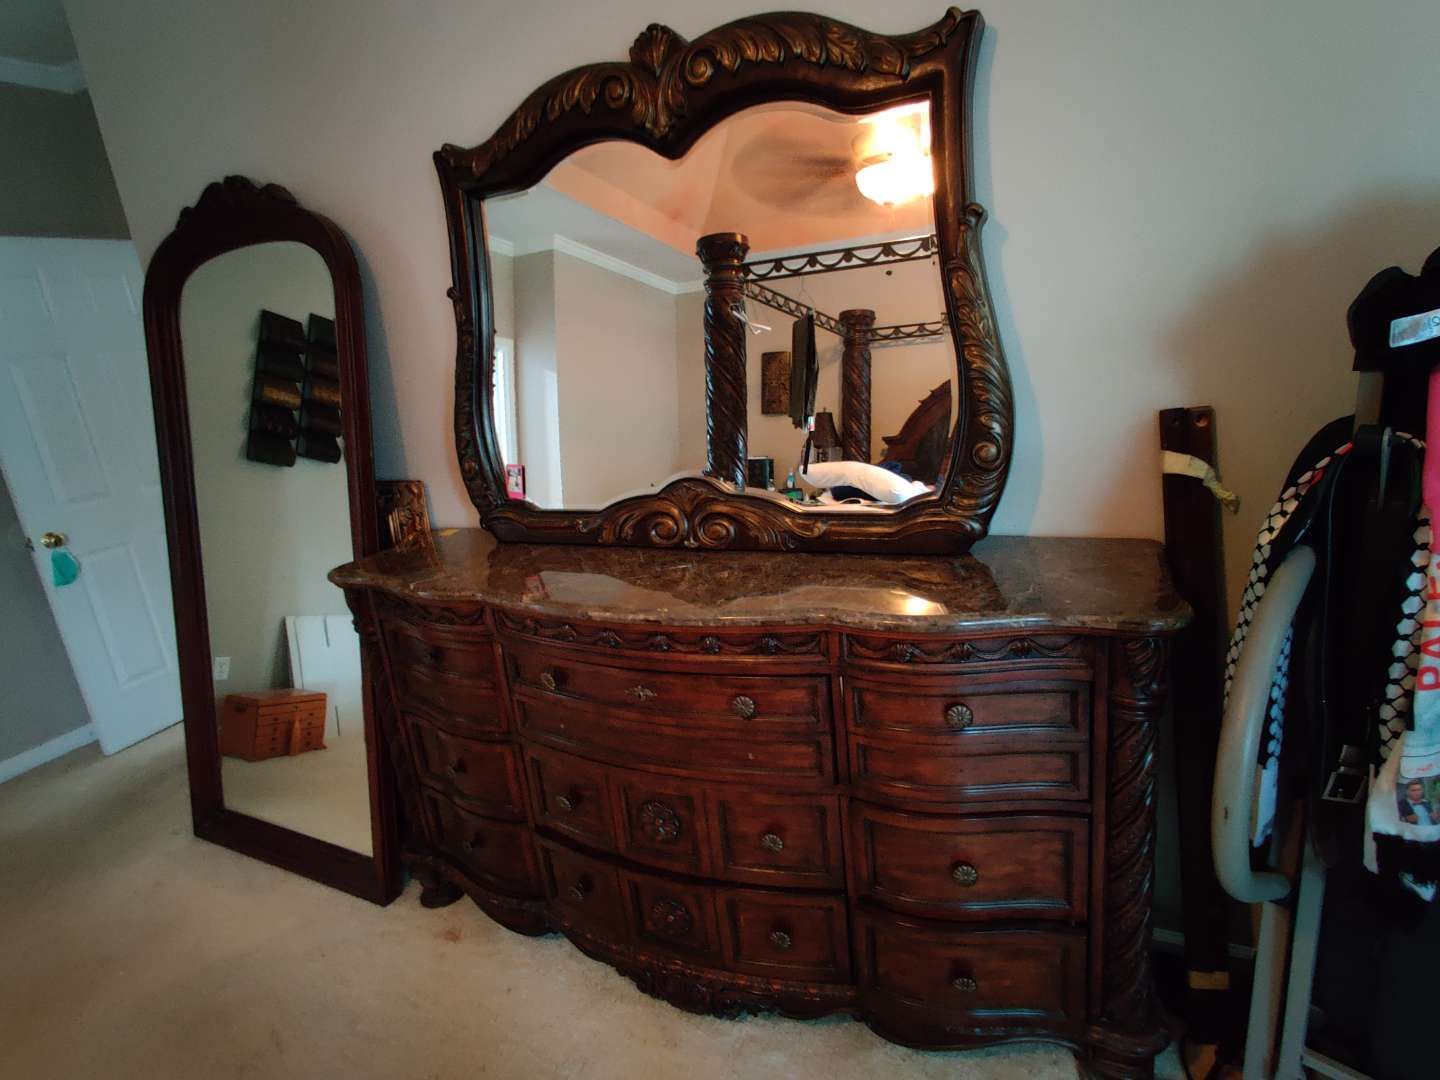 240 large marble top dresser and mirror 72 inches wide 39 inches tall